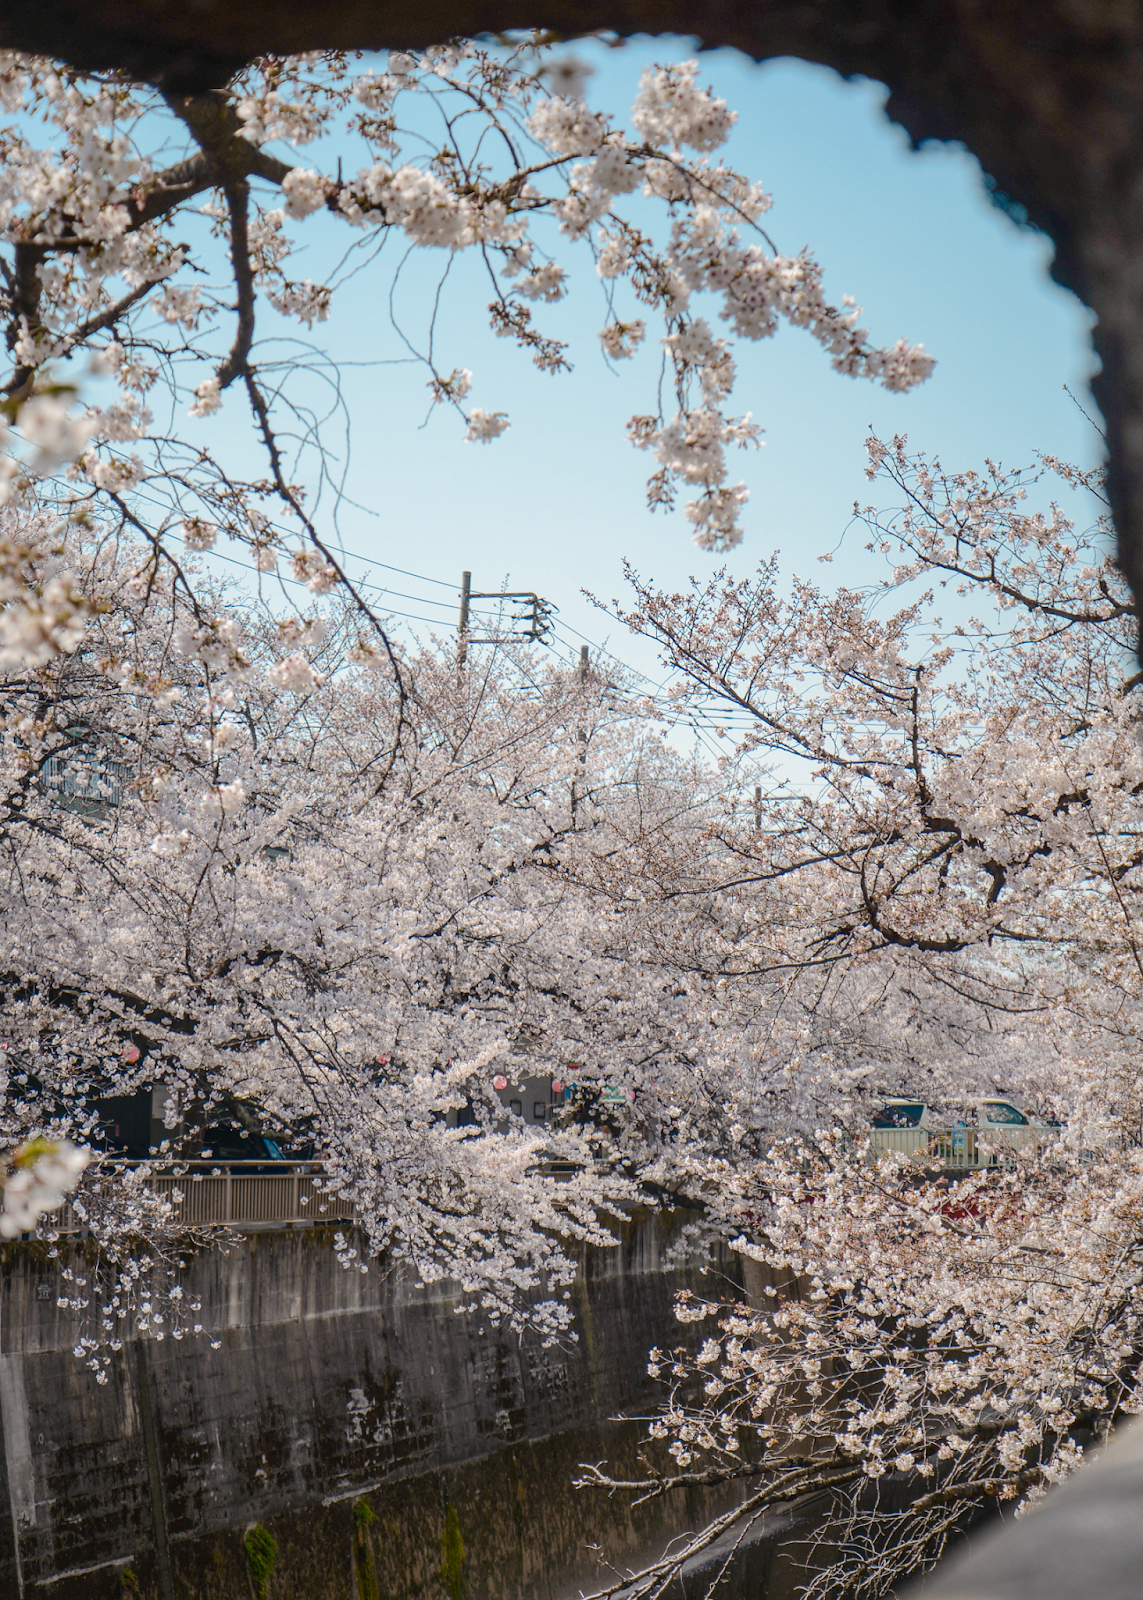 Local cherry blossom spot in Tokyo, quiet spots to view cherry blossom, Tokyo's Not So Secret Cherry Blossoms Spots That You Might Not Know Of - Style and Travel Blogger Van Le (FOREVERVANNY.com)